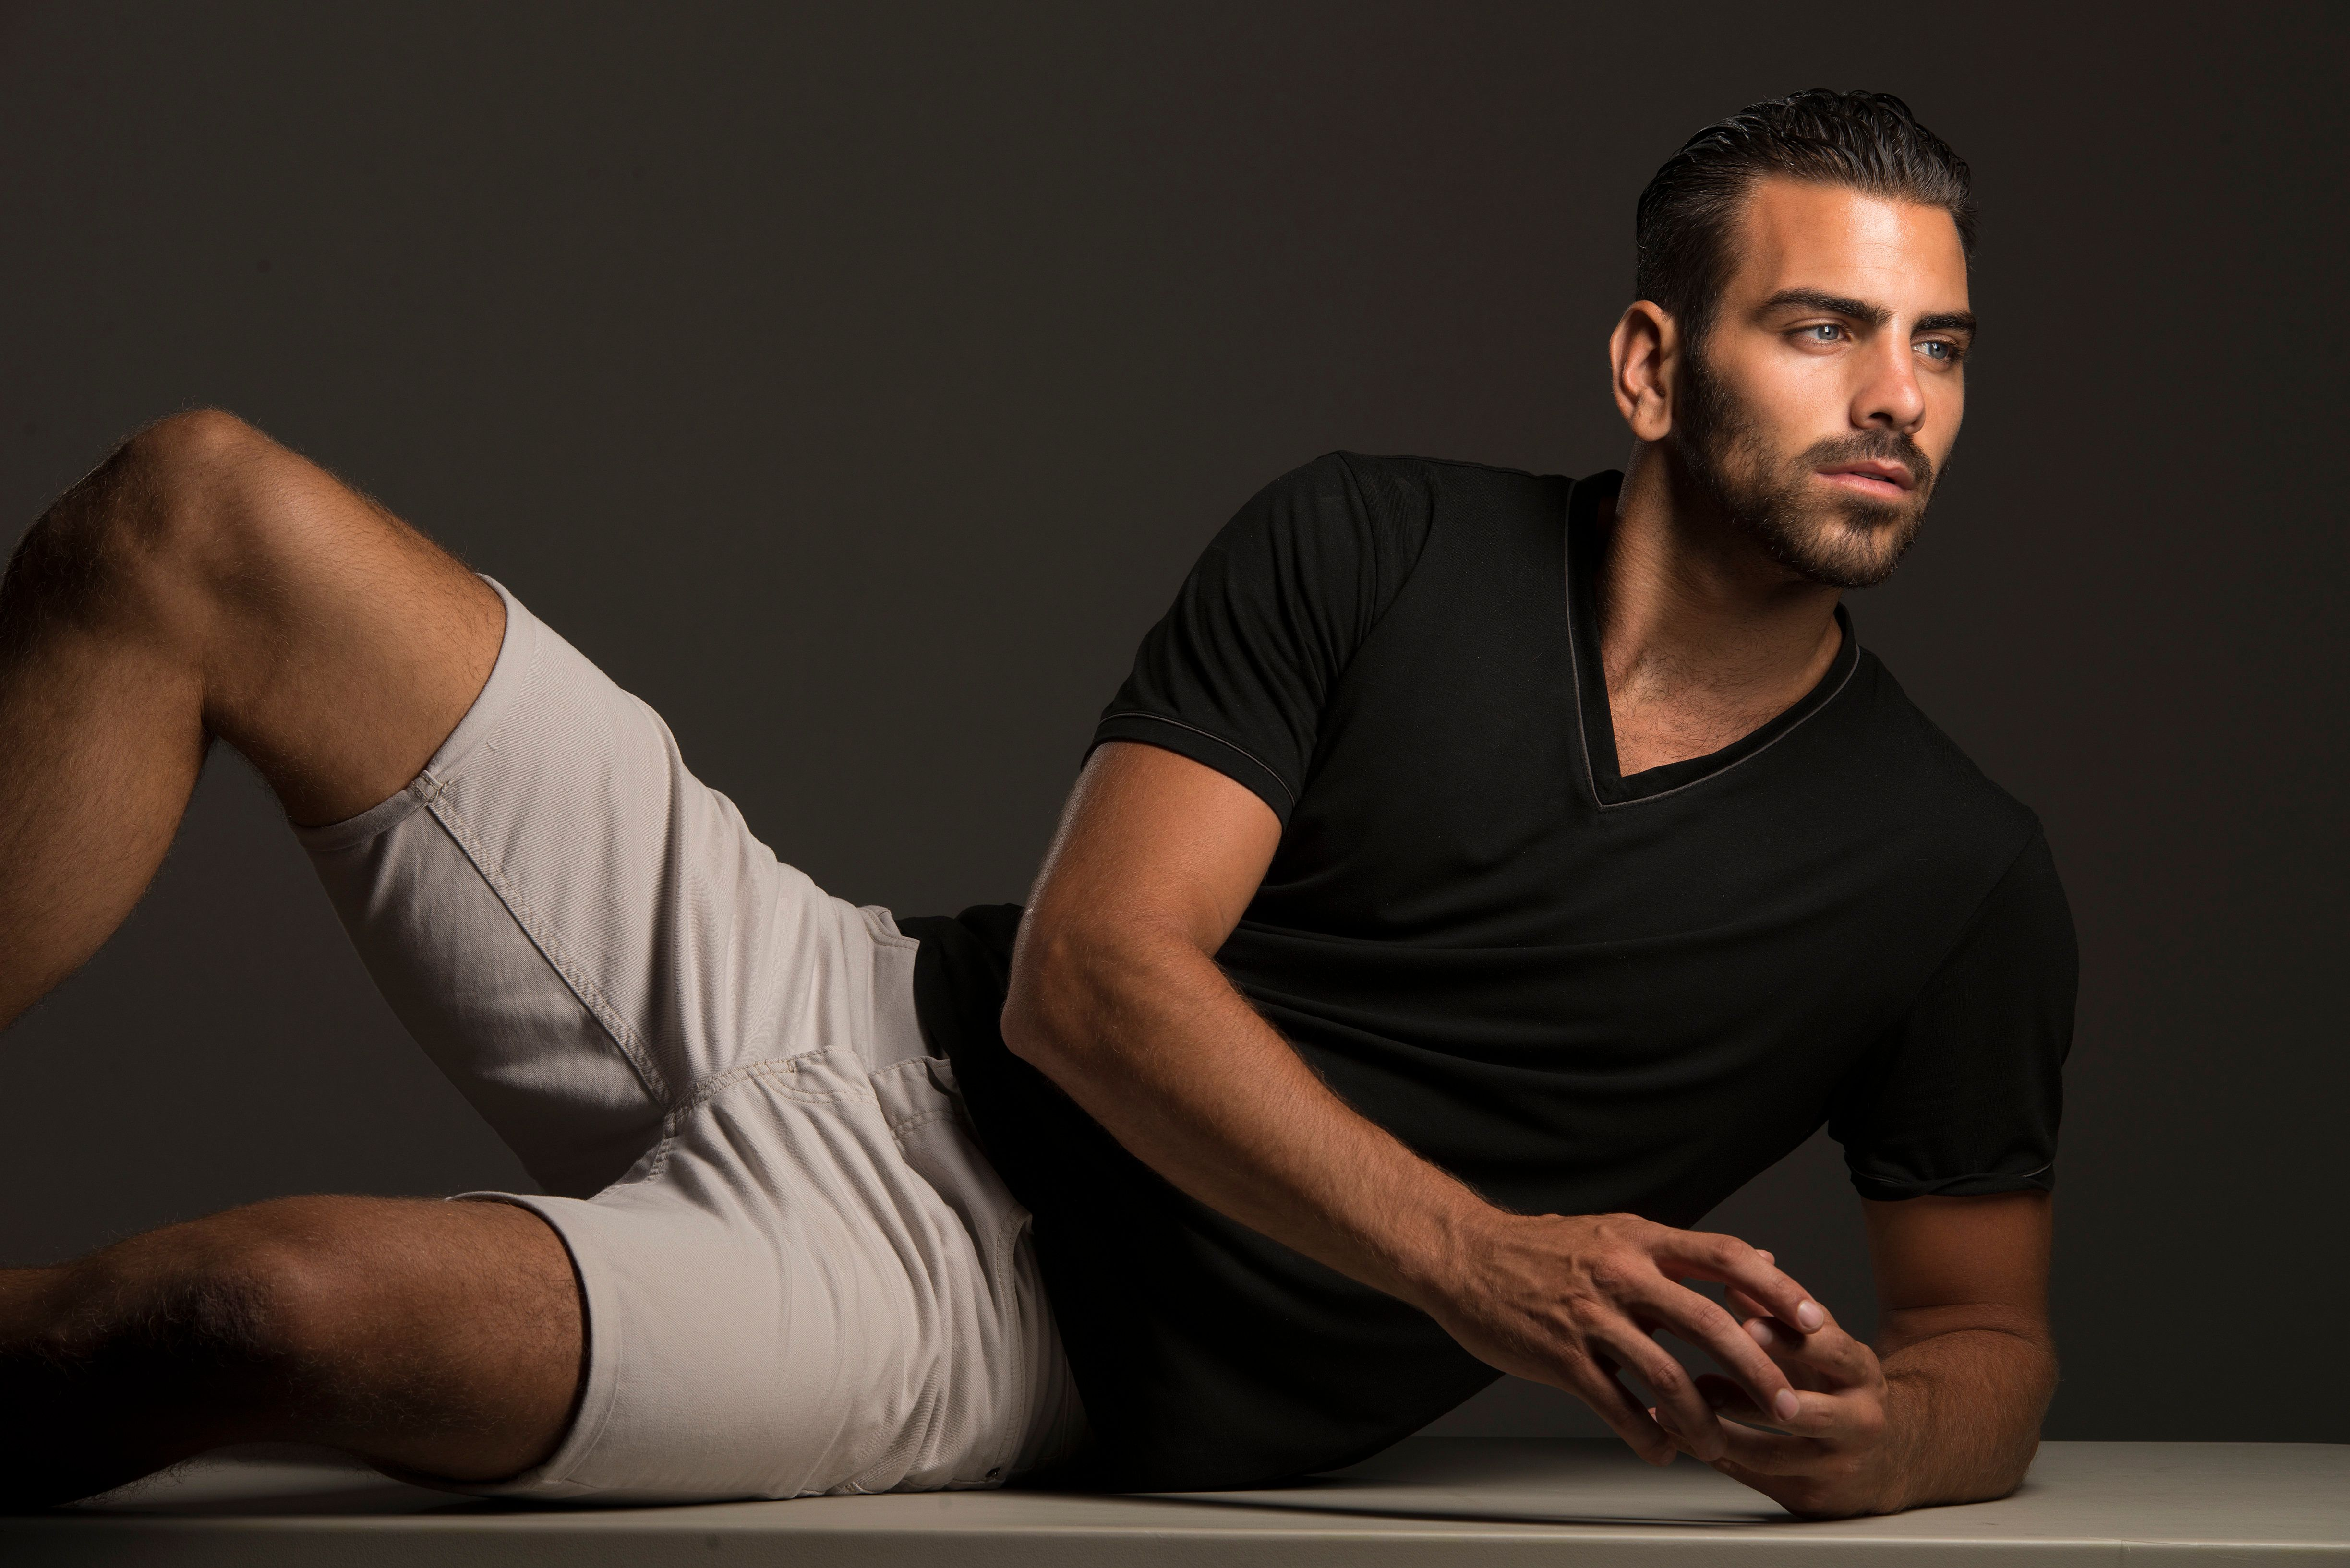 WASHINGTON, DC- AUGUST 05: Nyle DiMarco, a graduate of Gallaudet University, is the first deaf contestant to ever appear on America's Next Top Model. He is photographed at the Washington Post in Washington, D.C. on August 05, 2015.  (Photo by Marvin Joseph/The Washington Post via Getty Images)